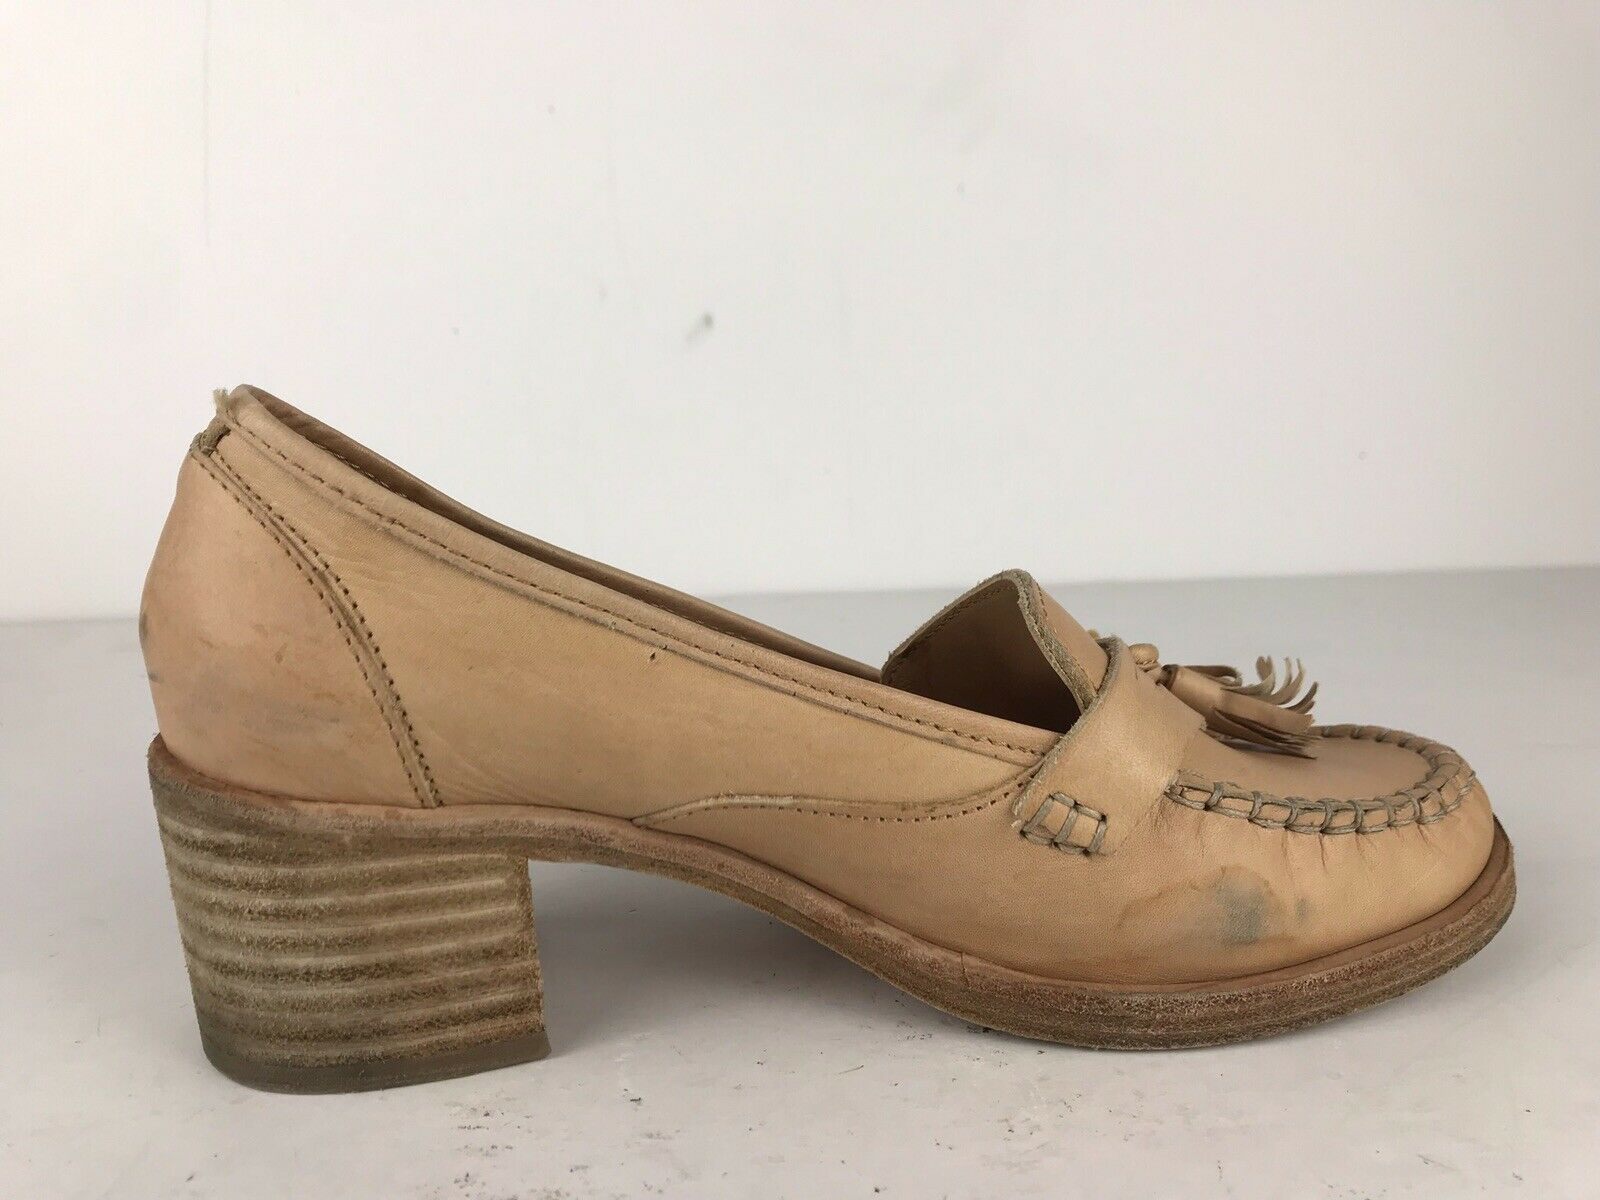 Swedish Hasbeens Tan Tassel Leather Penny Heel Loafer Casual Casual Casual schuhe Sz 37 7 Sweden 894dce